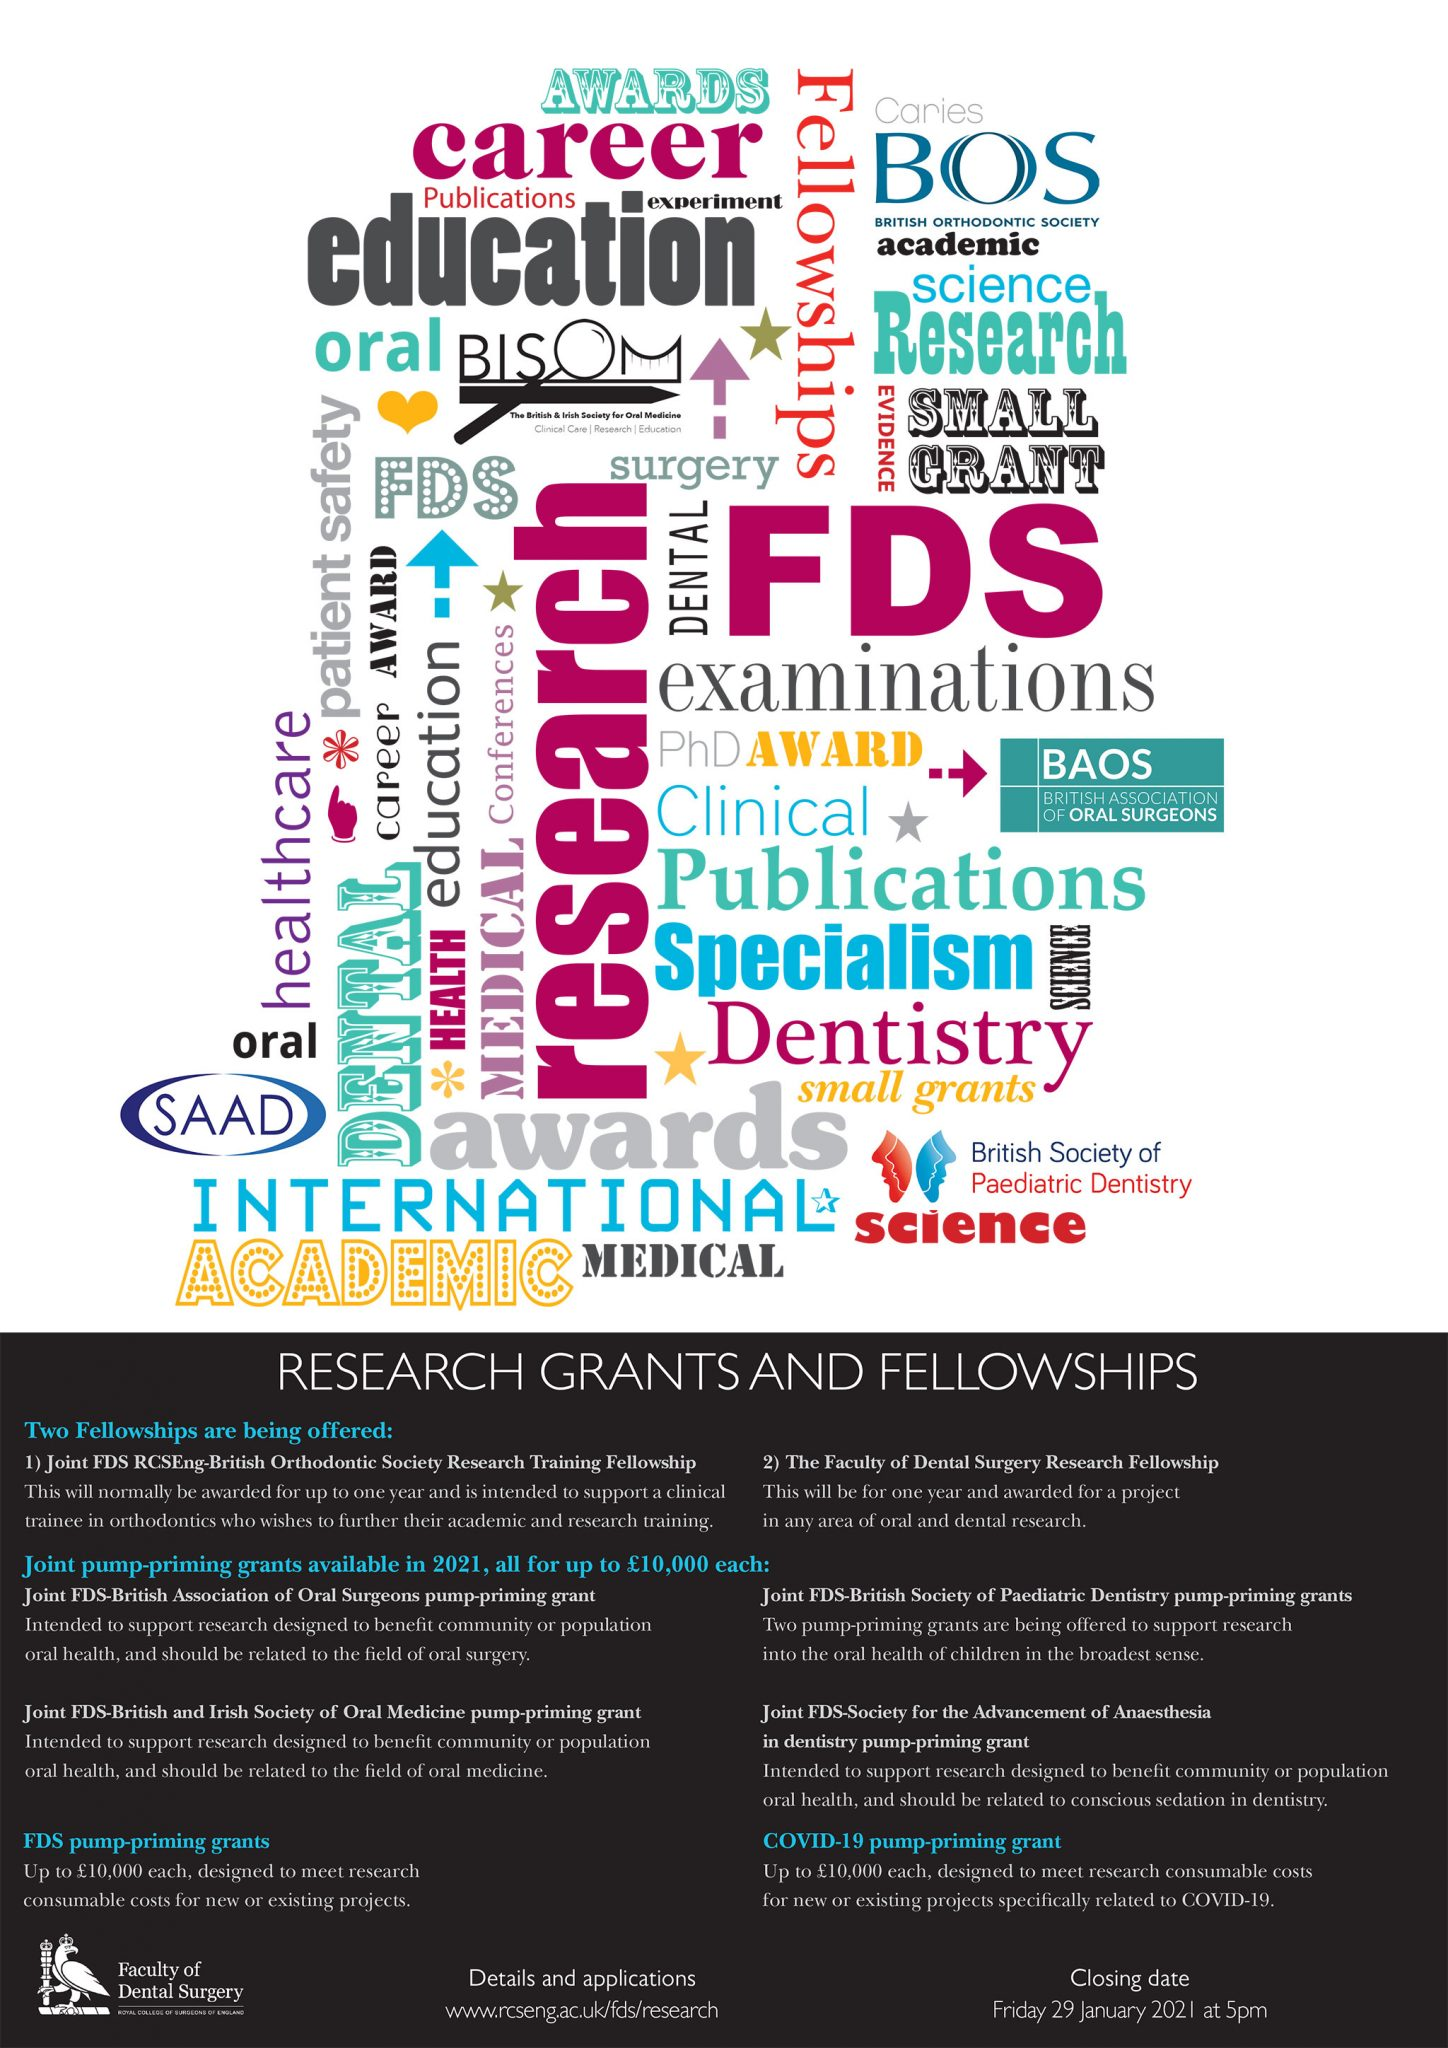 Research grants and fellowships